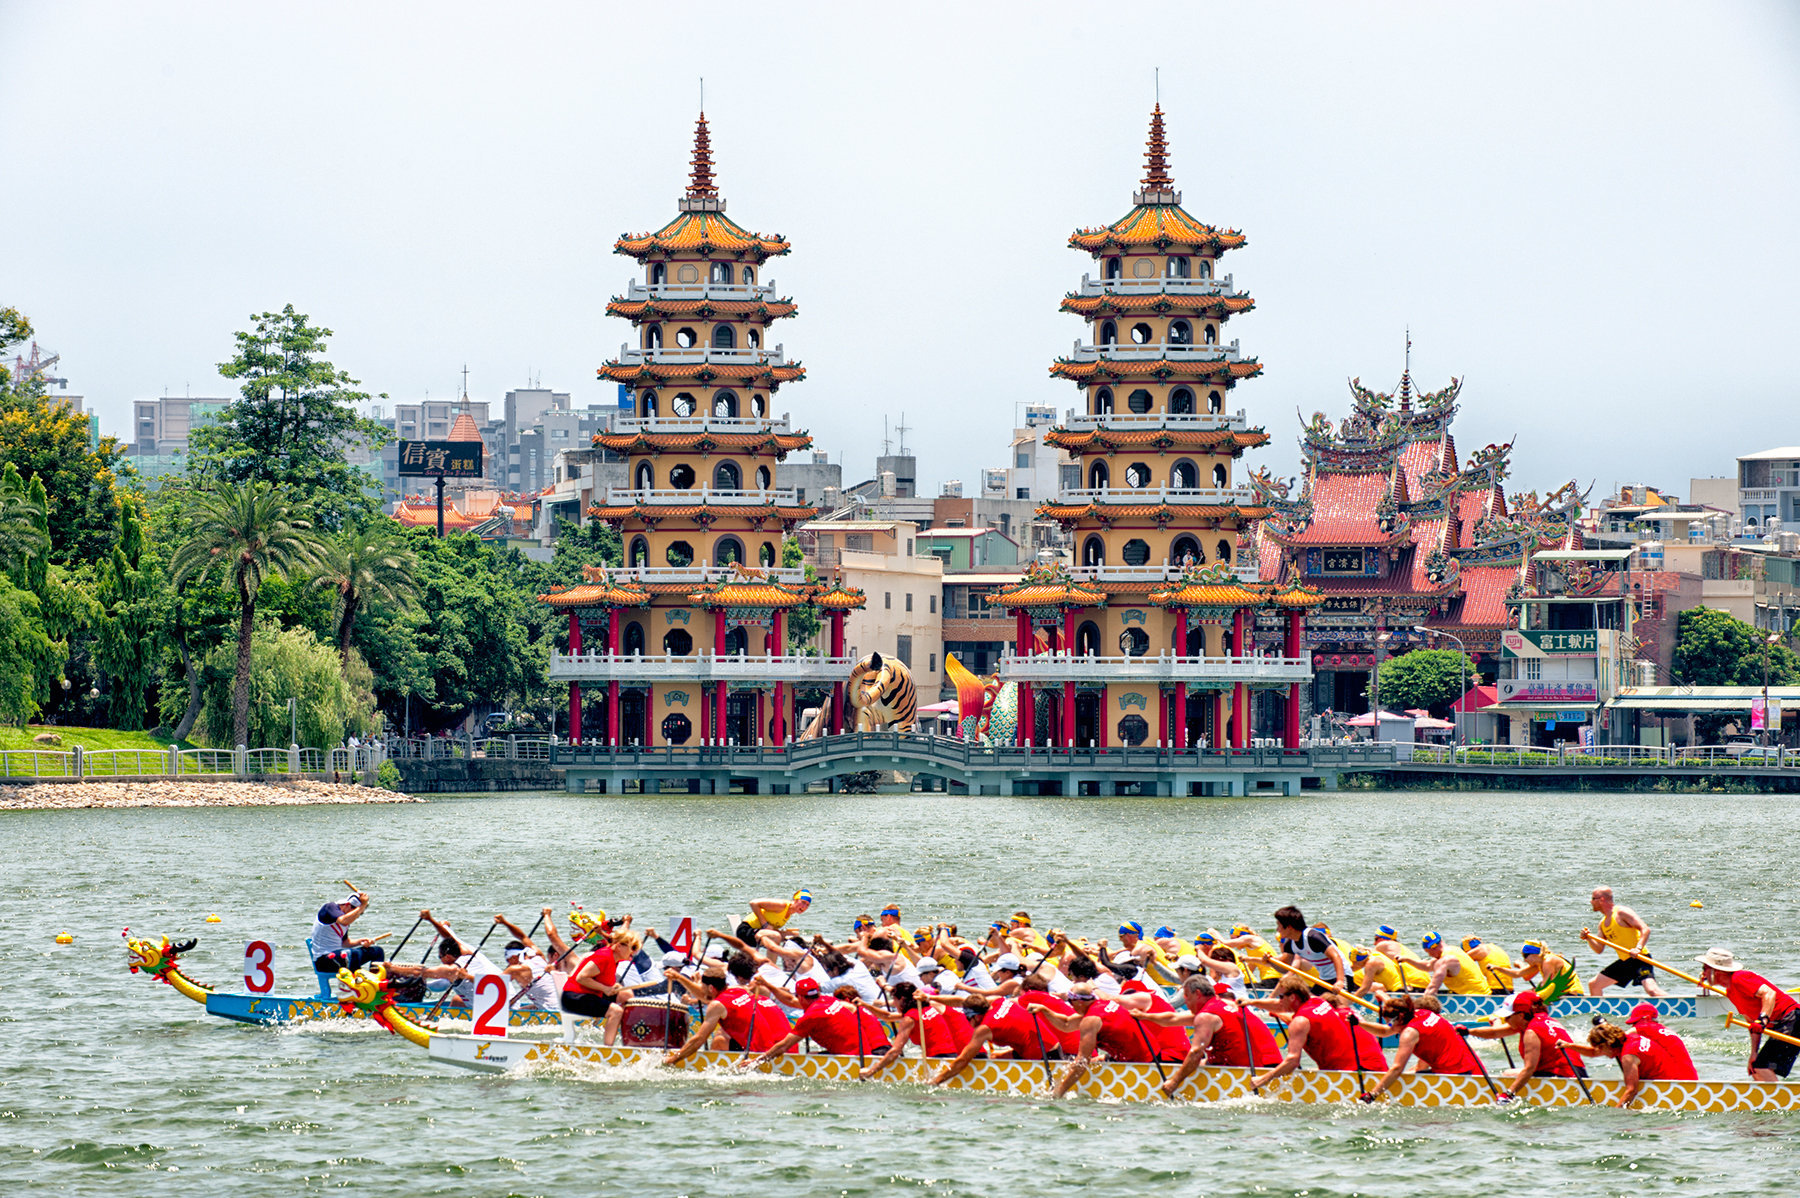 Dragon Boat races in front of Dragon and Tiger Pagodas, Lotus Pond, Kaohsiung, Taiwan